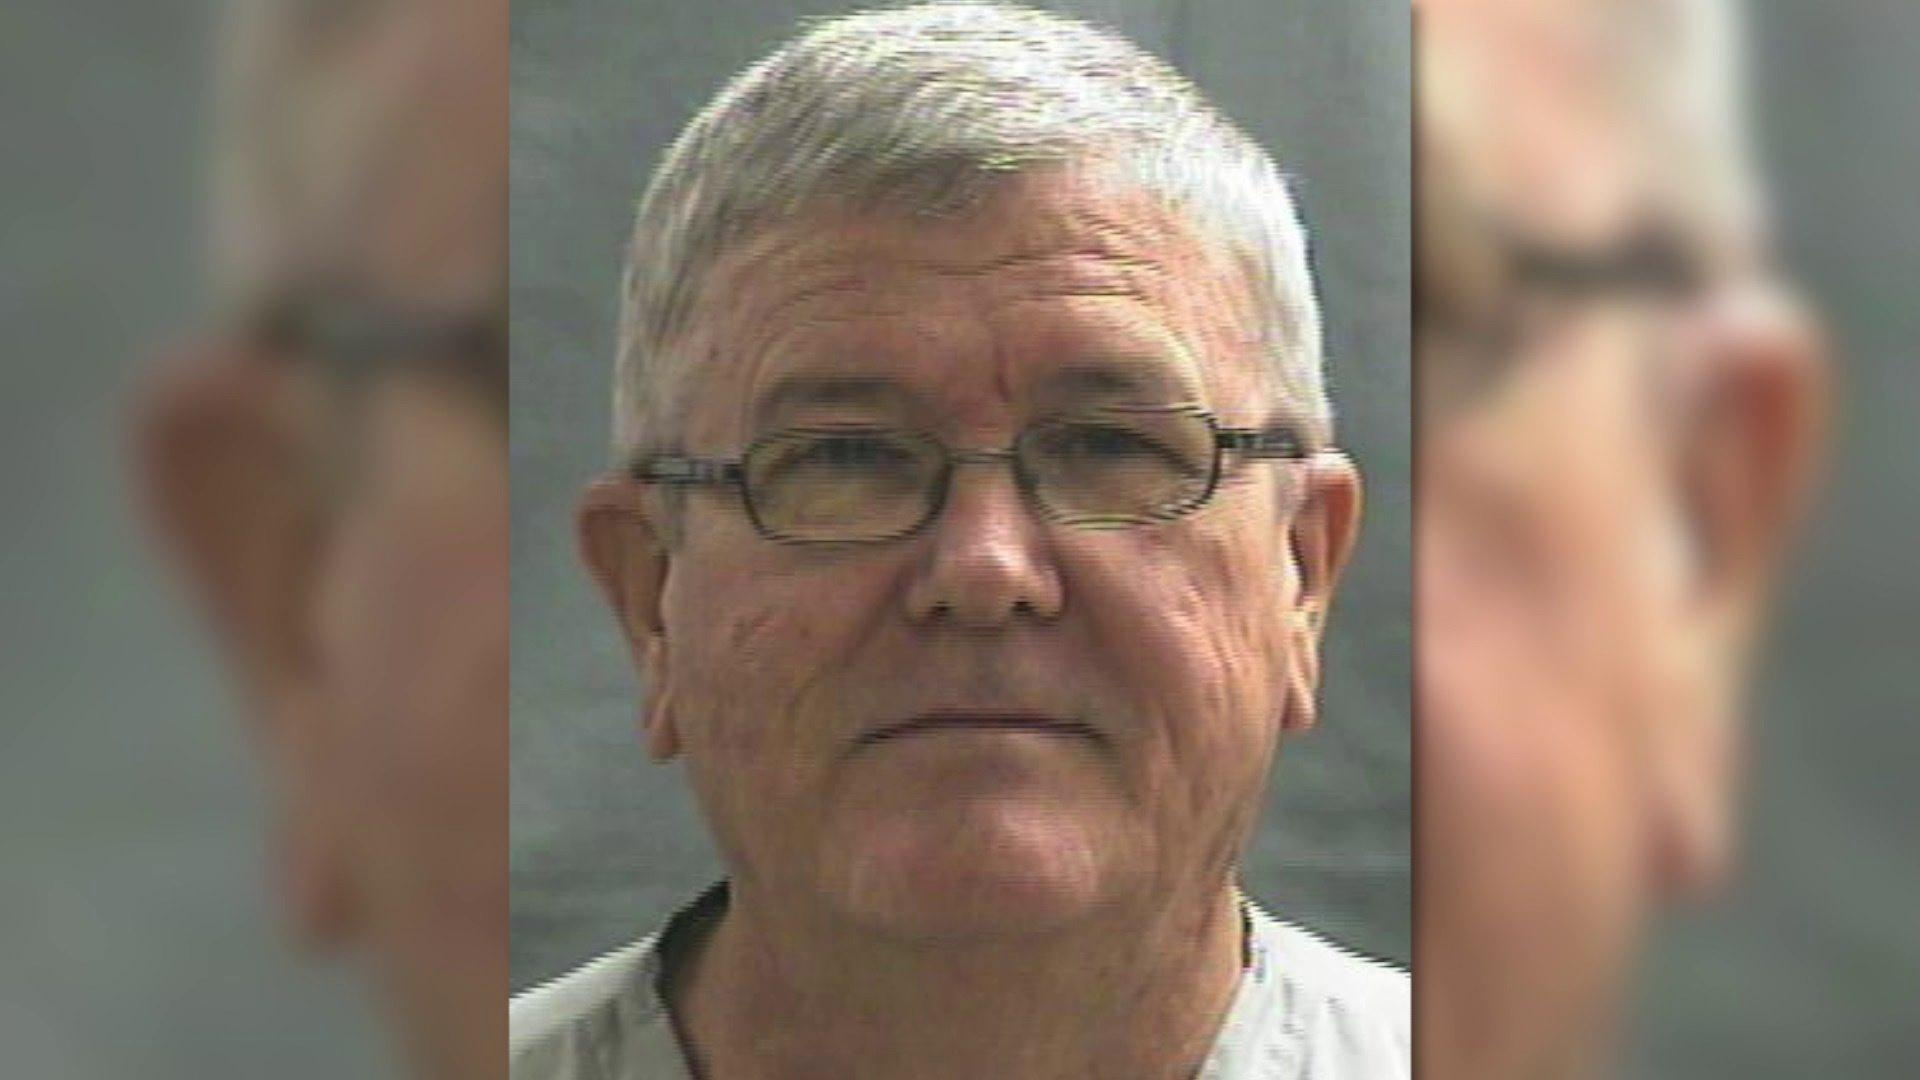 A Child Molester Moved Next Door To His Victim -- And The Law Says It's Fine